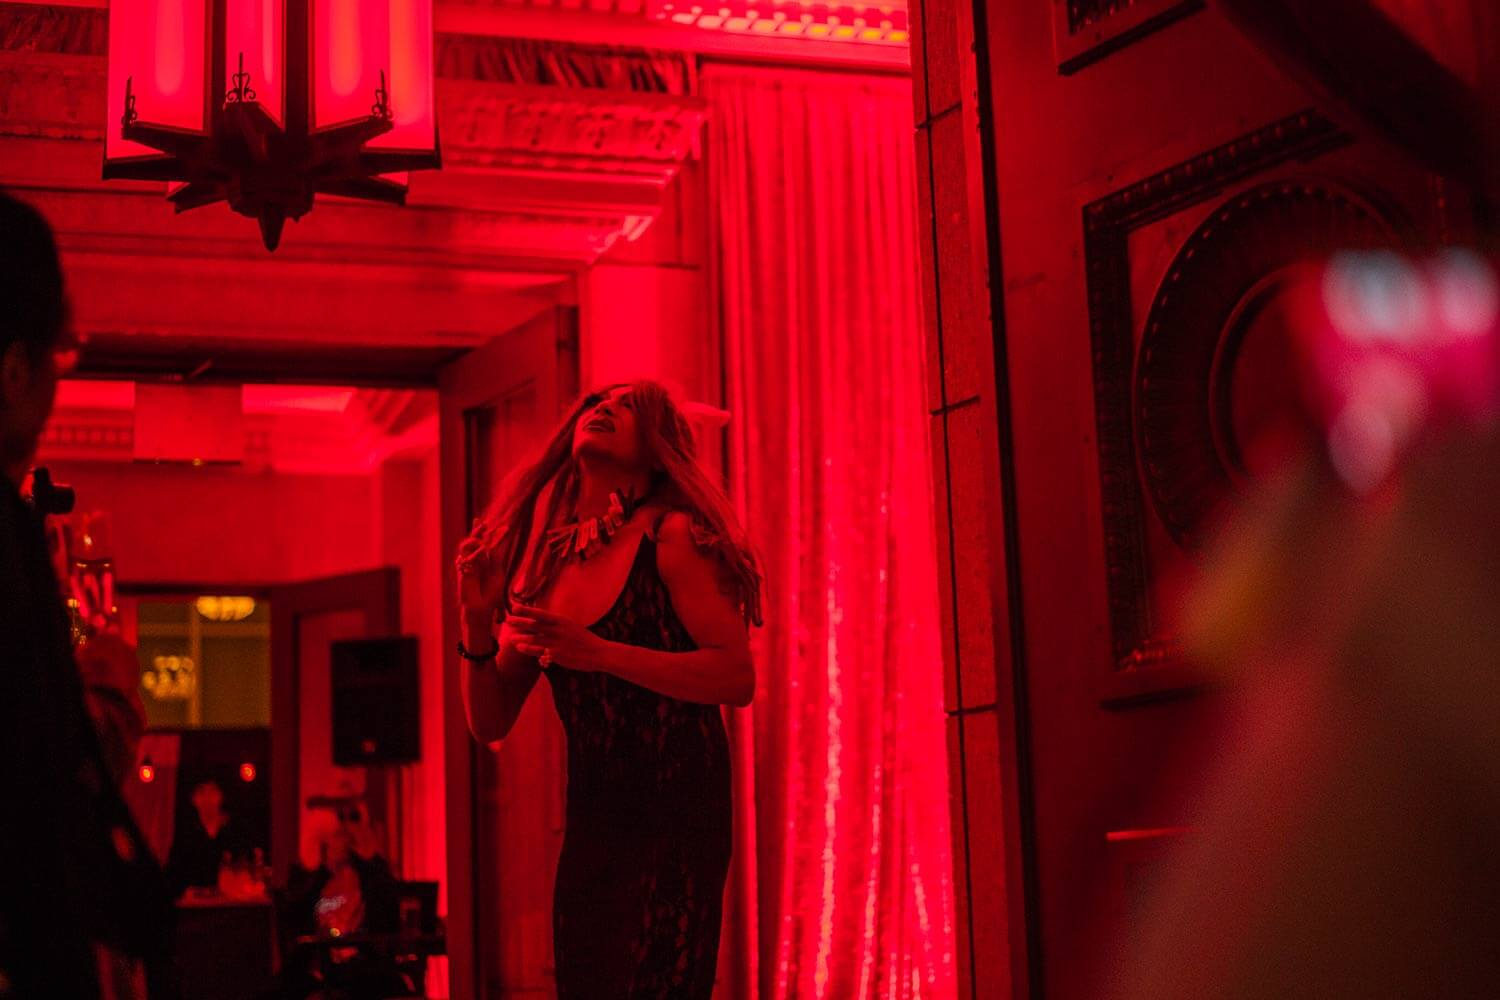 RED ROOM #2 PHOTOS 現代美術・アート Contemporary Art オフソサエティ offsociety